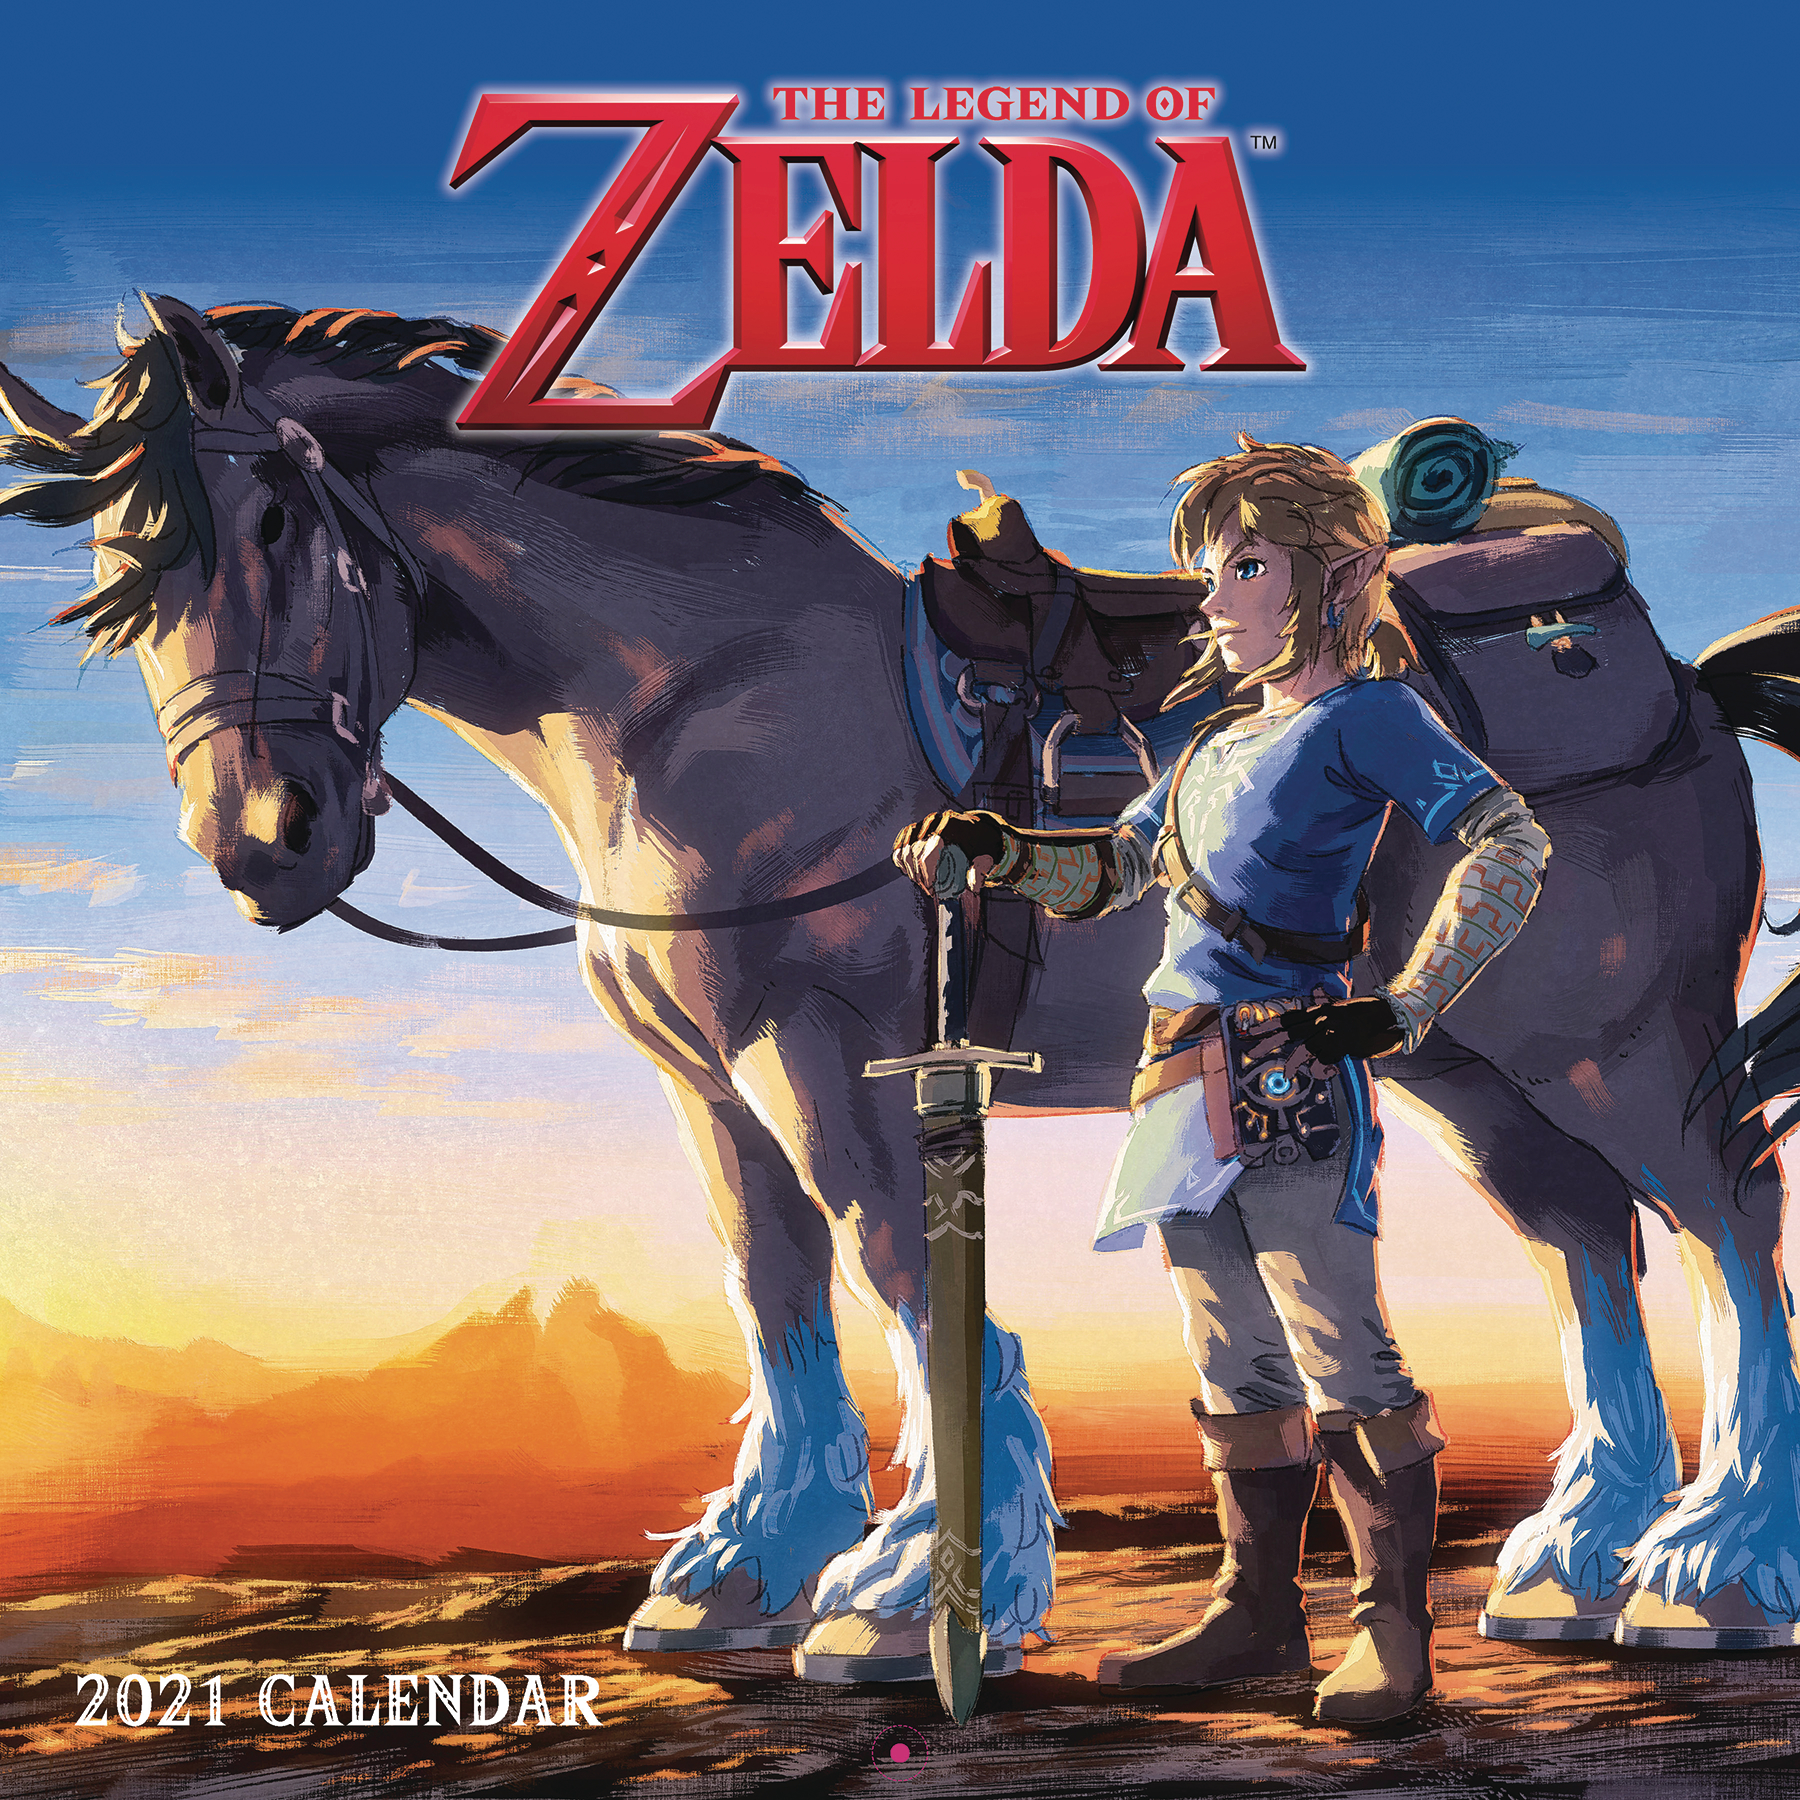 LEGEND OF ZELDA 2021 WALL CALENDAR